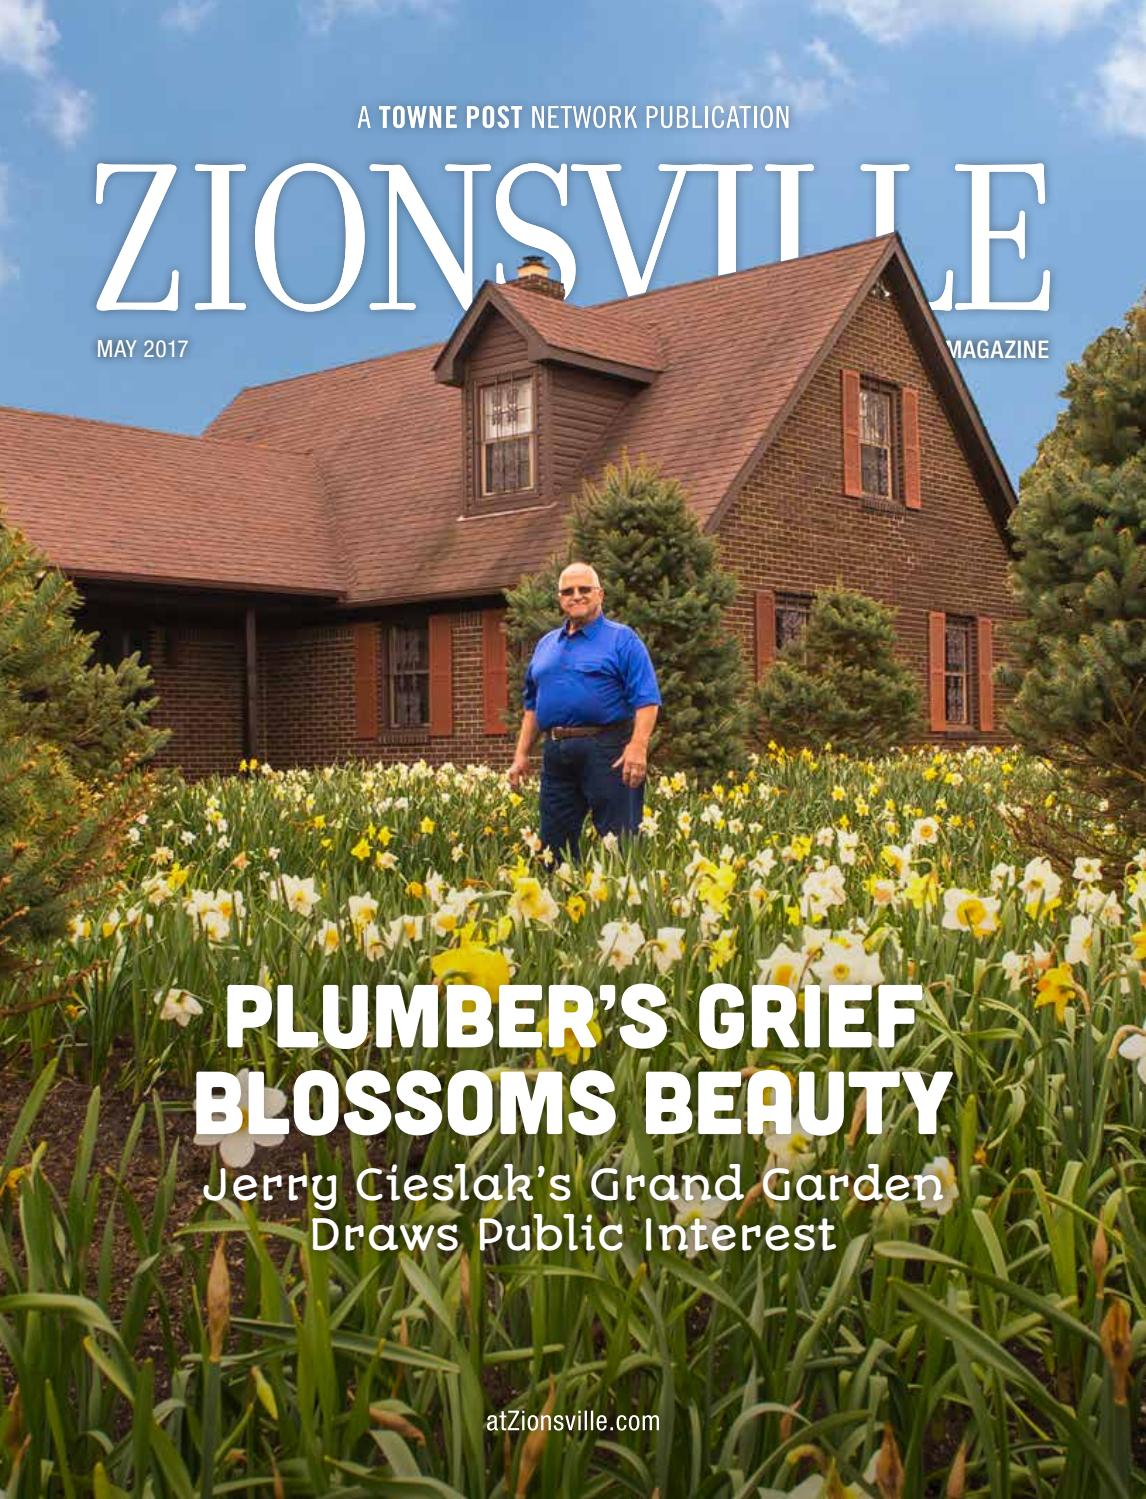 Zionsville Magazine May 2017 by Towne Post Network, Inc. - issuu